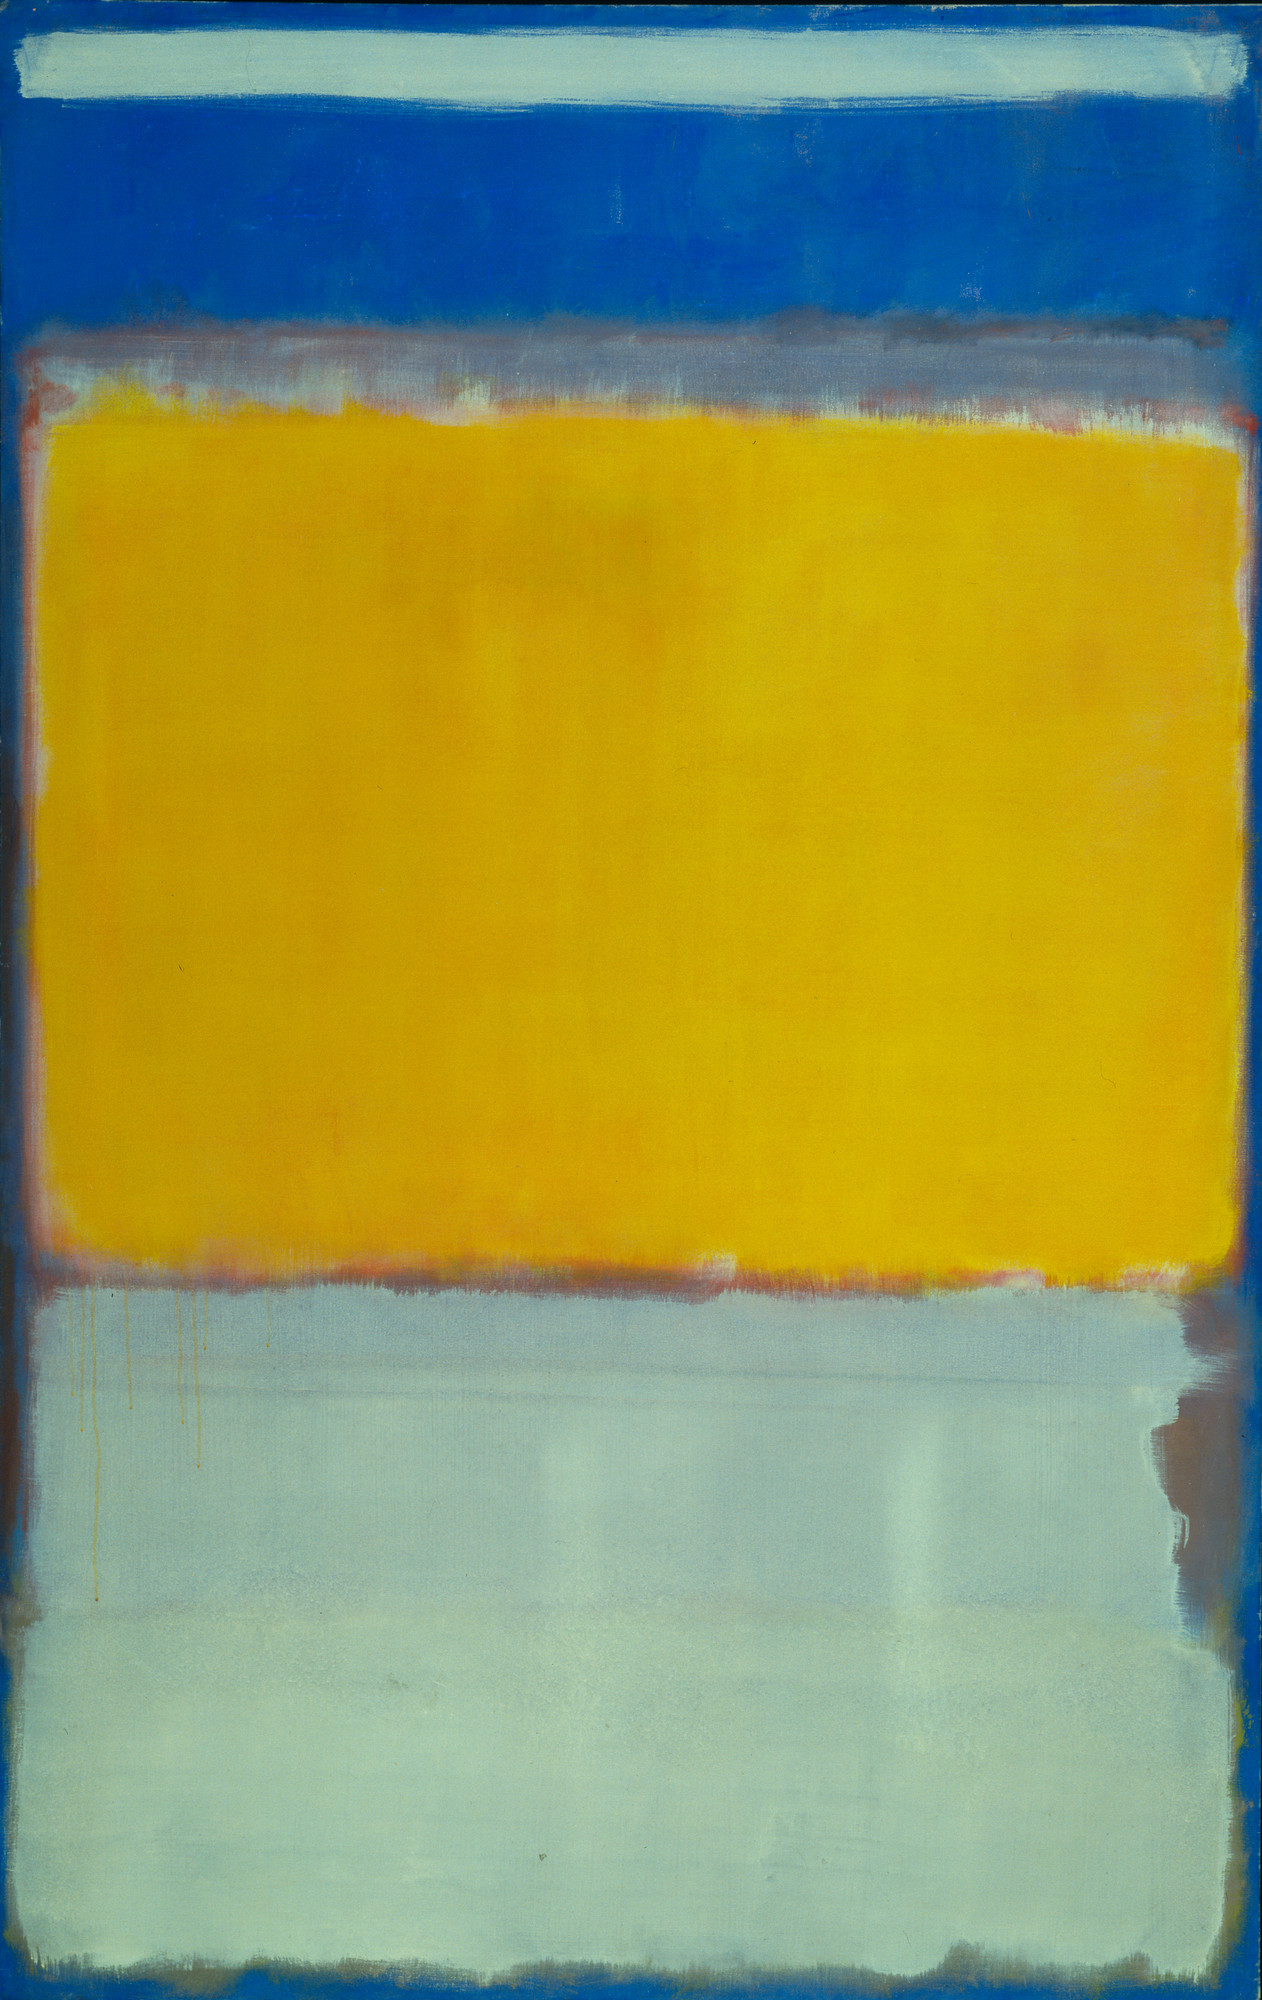 Mark Rothko. No. 10. 1950. Oil on canvas, 7′ 6 3/8″ × 57 1/8″ (229.6 × 145.1 cm). Gift of Philip Johnson. © 1998 Kate Rothko Prizel & Christopher Rothko/Artists Rights Society (ARS), New York